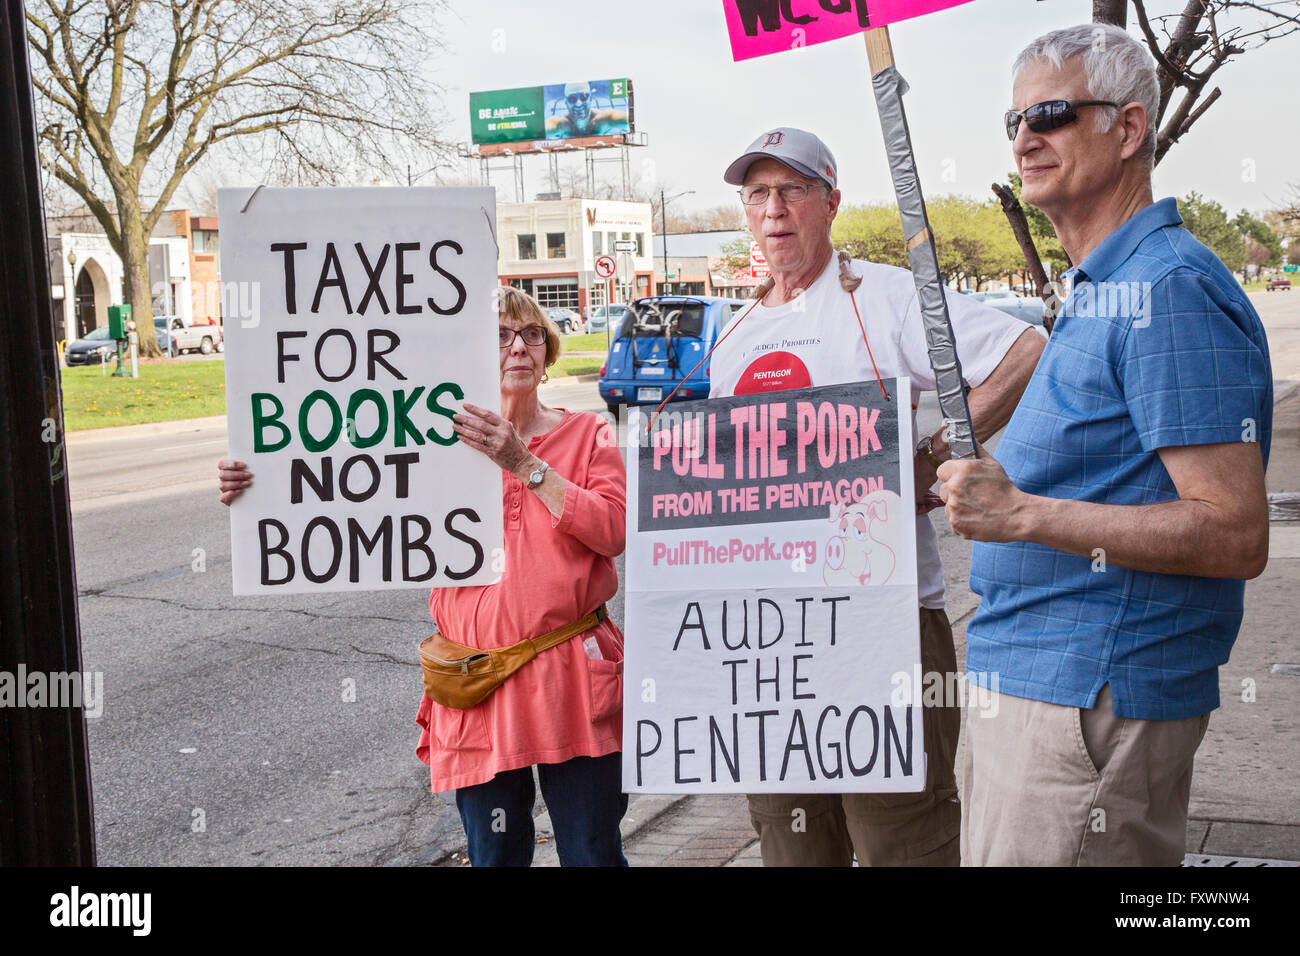 Ferndale, Michigan, USA. 18th April 2016. Protesters gather at the income tax filing deadline to call for peaceful - Stock Image